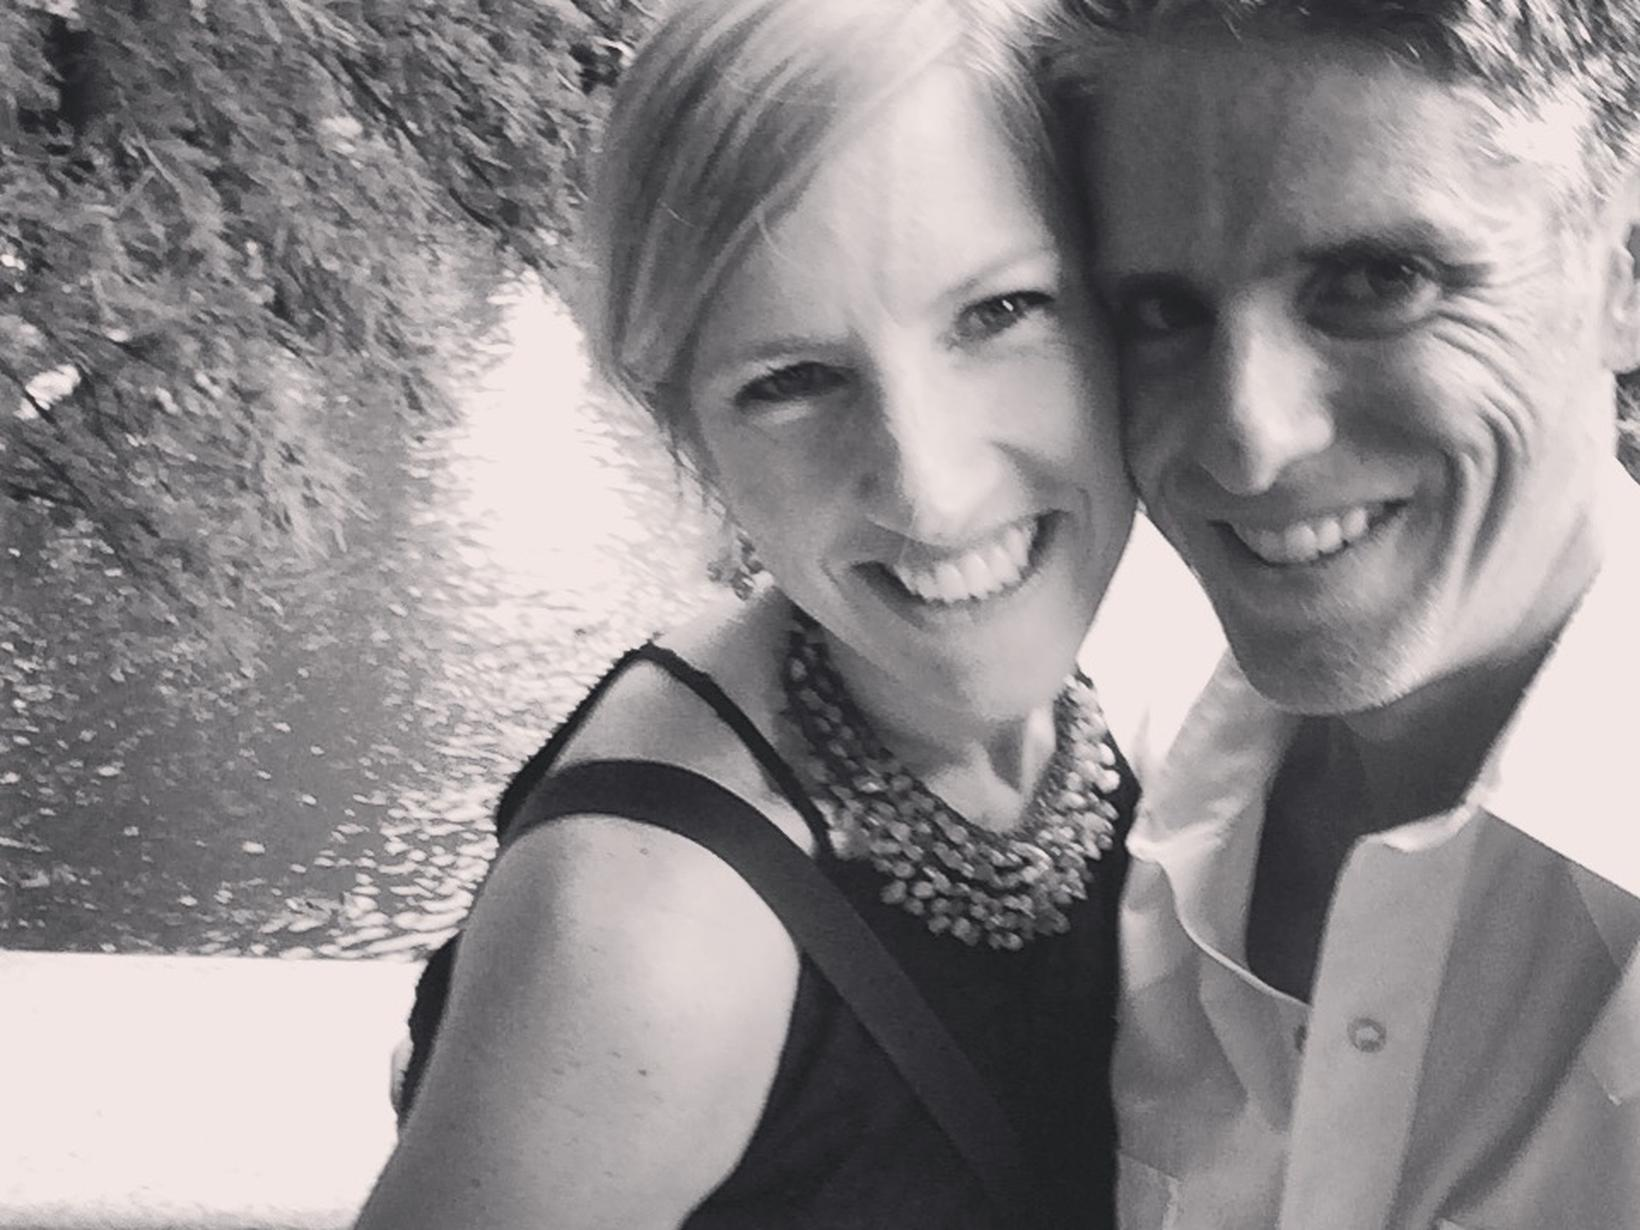 Christine & William from Kyle, Texas, United States